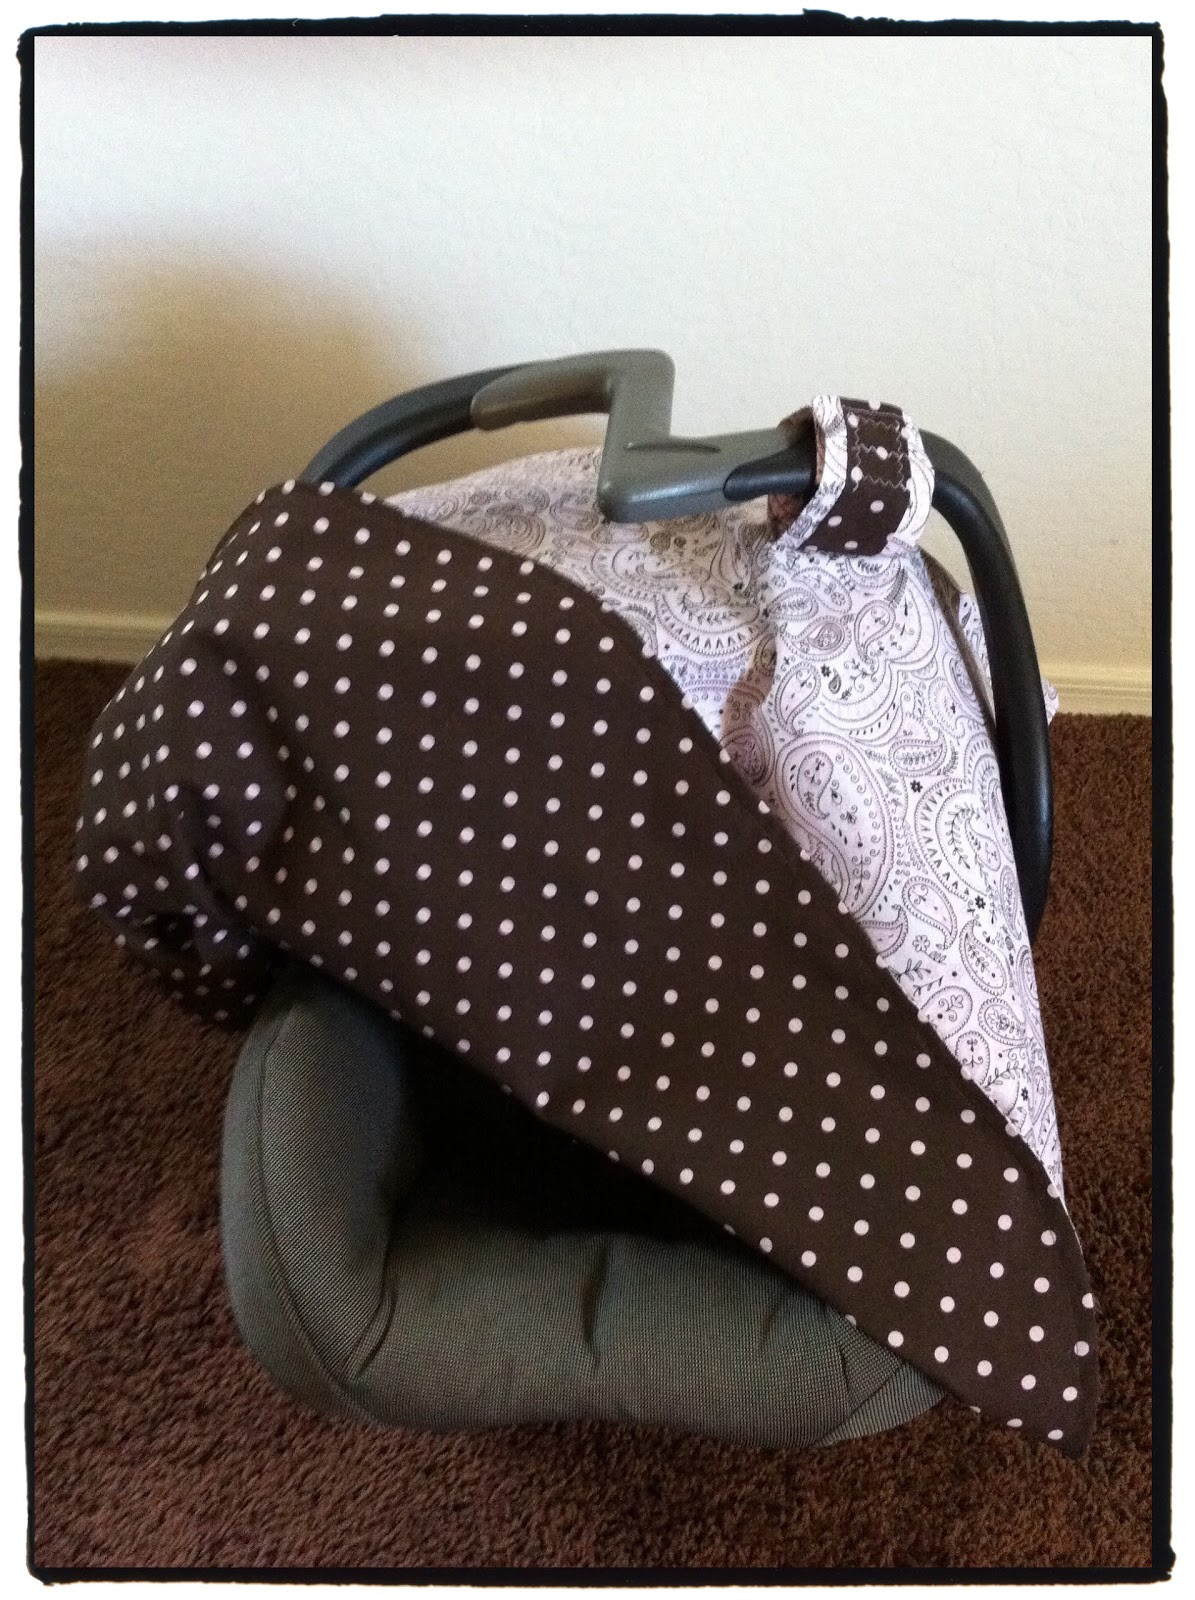 DIY Baby Car Seat Covers  Mo Momma Sewing DIY Car Seat Cover Canopy Tutorial